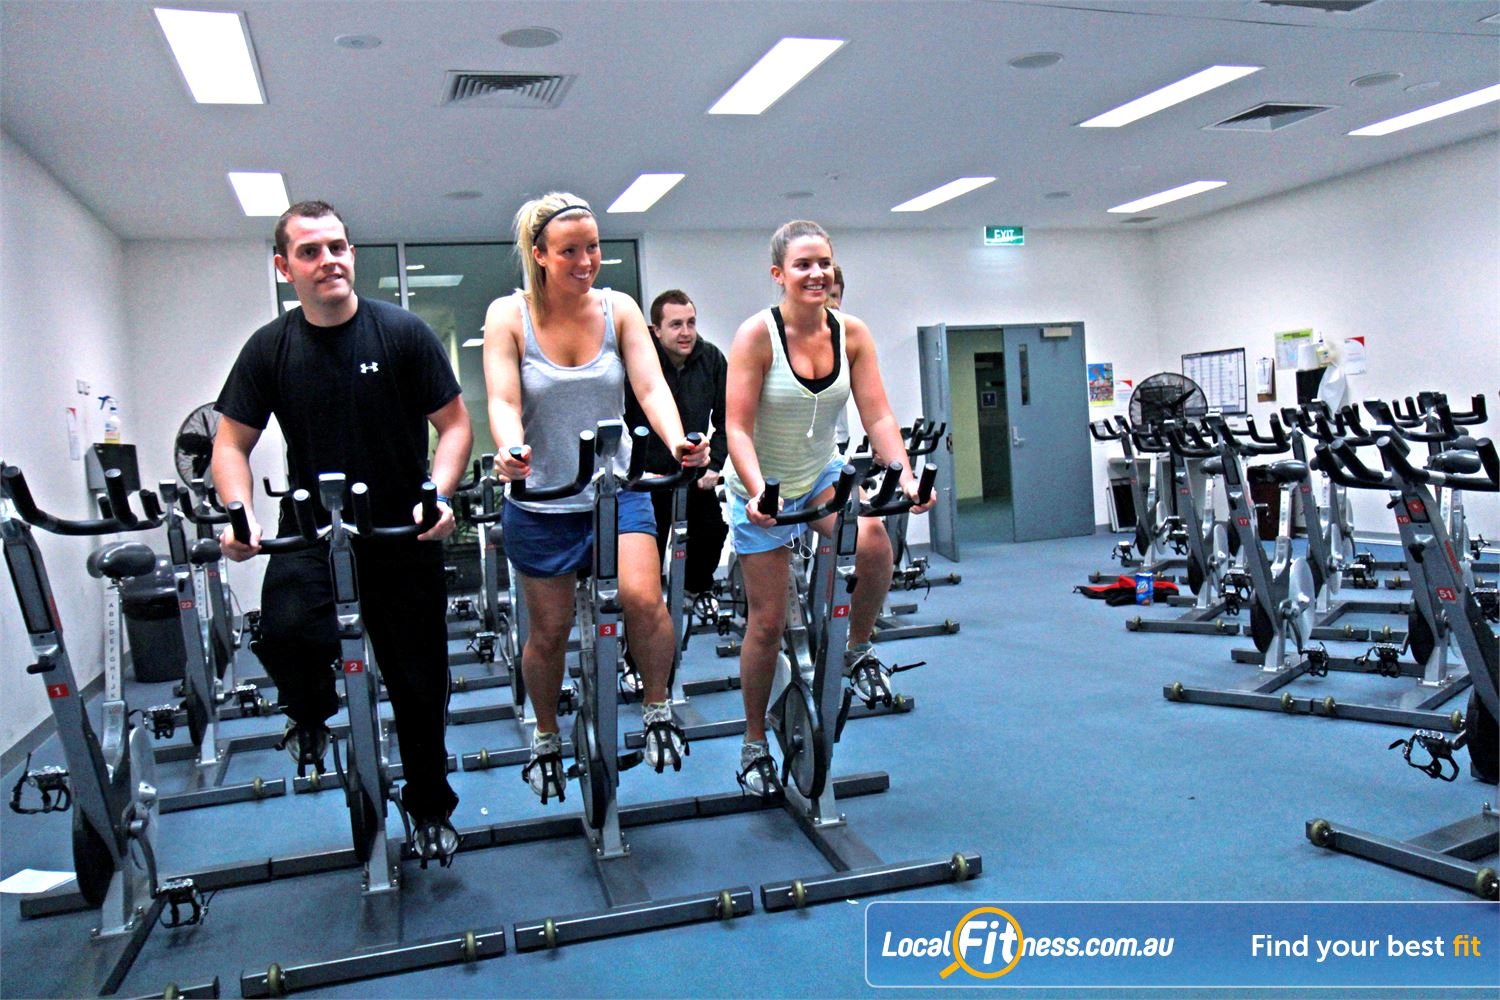 Ascot Vale Leisure Centre Ascot Vale Popular classes such as RPM and cycle run daily.